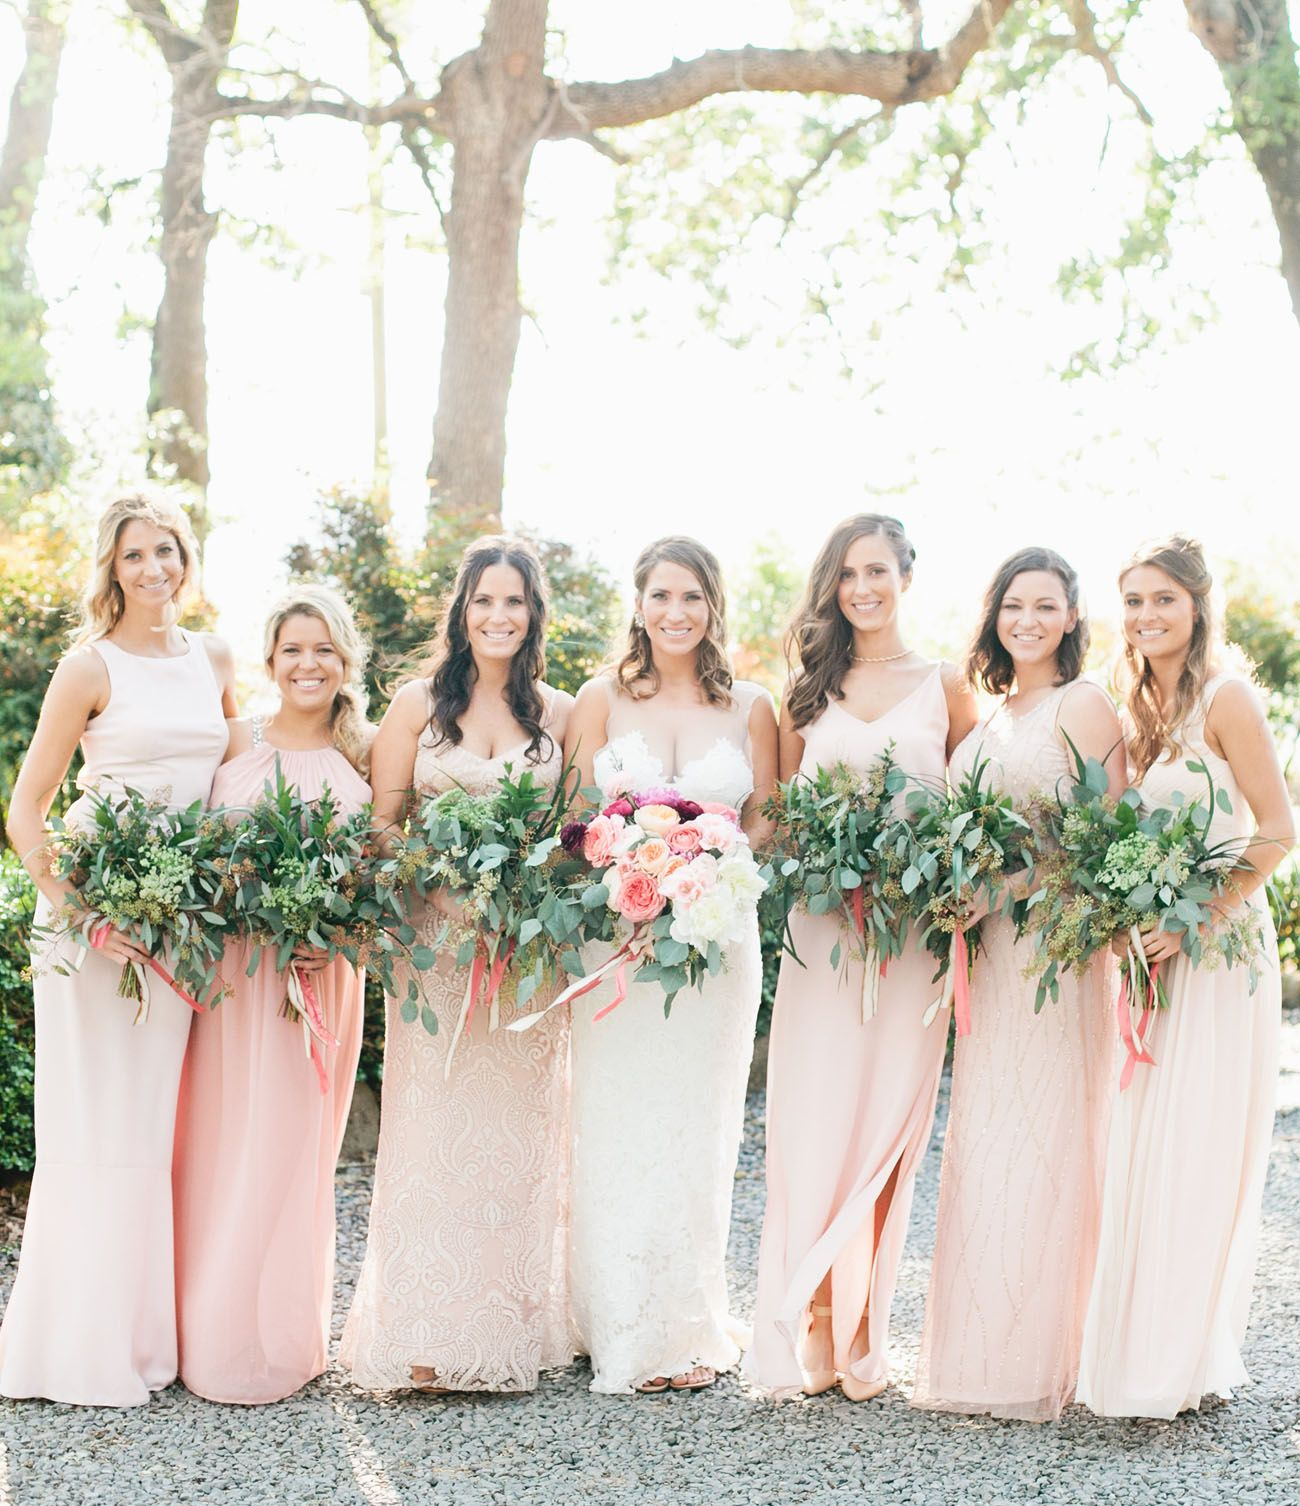 Lush + Romantic Annadel Estate Wedding: Janna + Sean | Blush pink ...